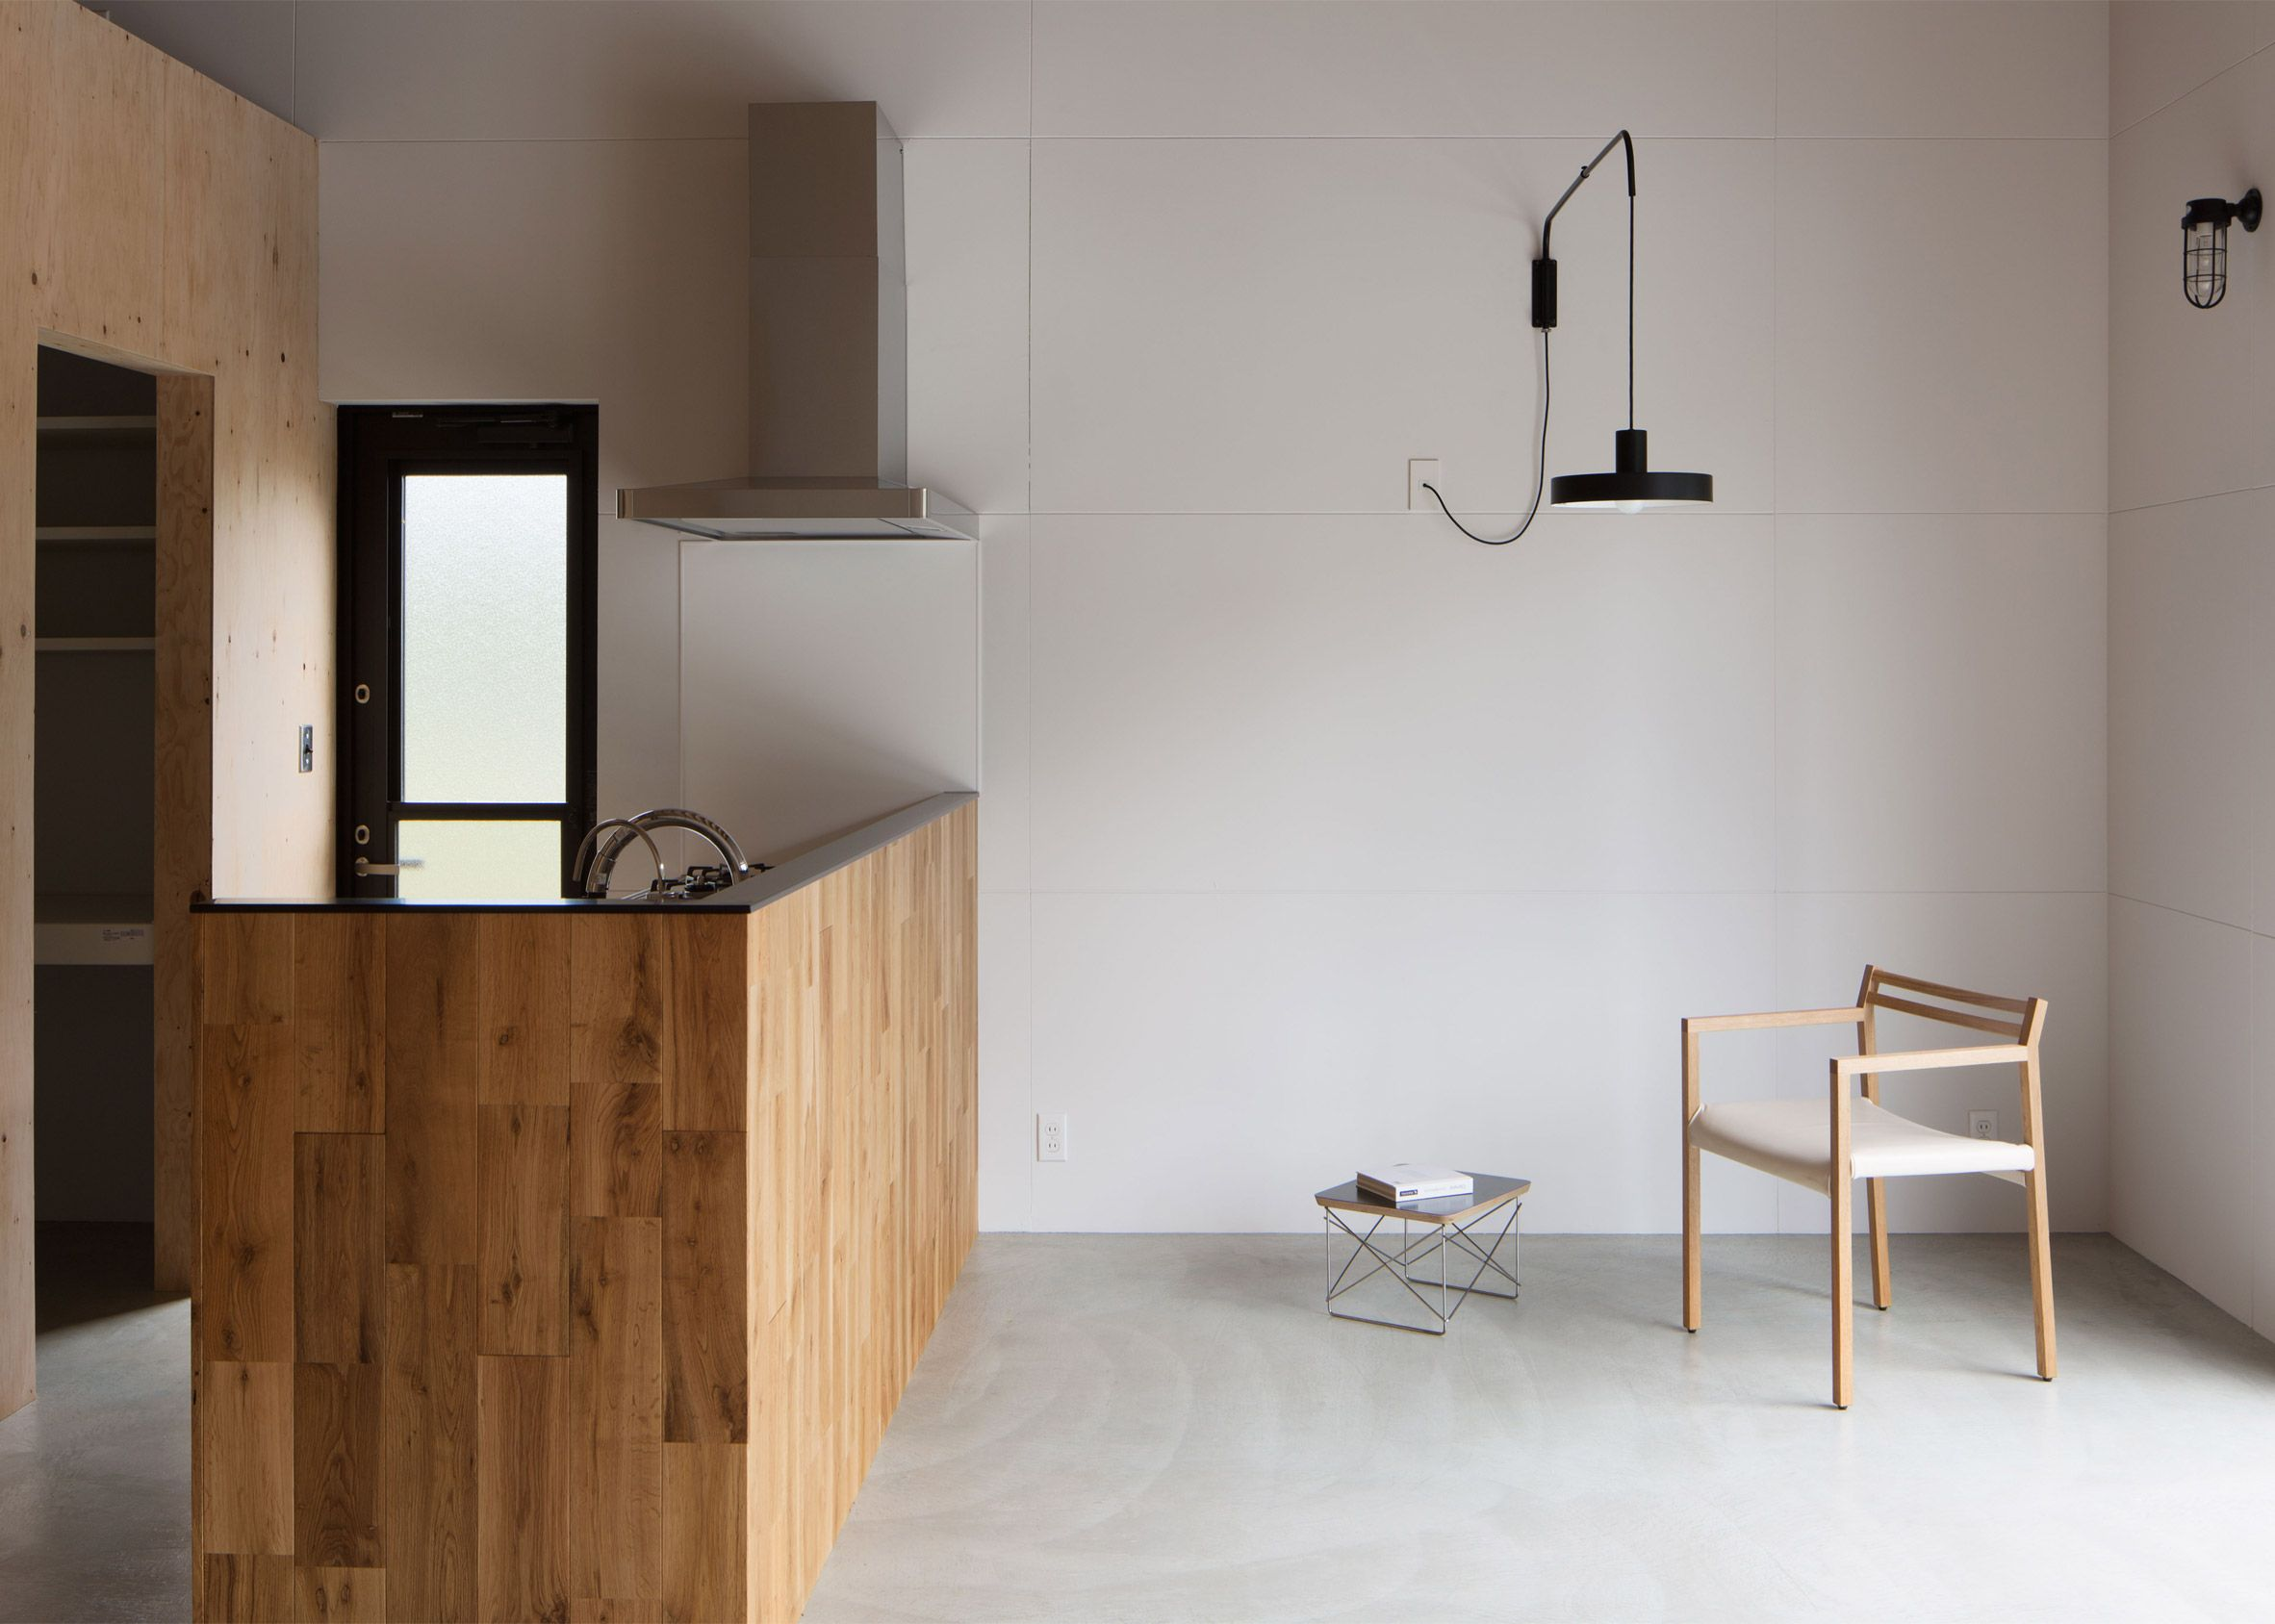 Japanese Studio Capd Has Used Large Wooden Boxes To Created